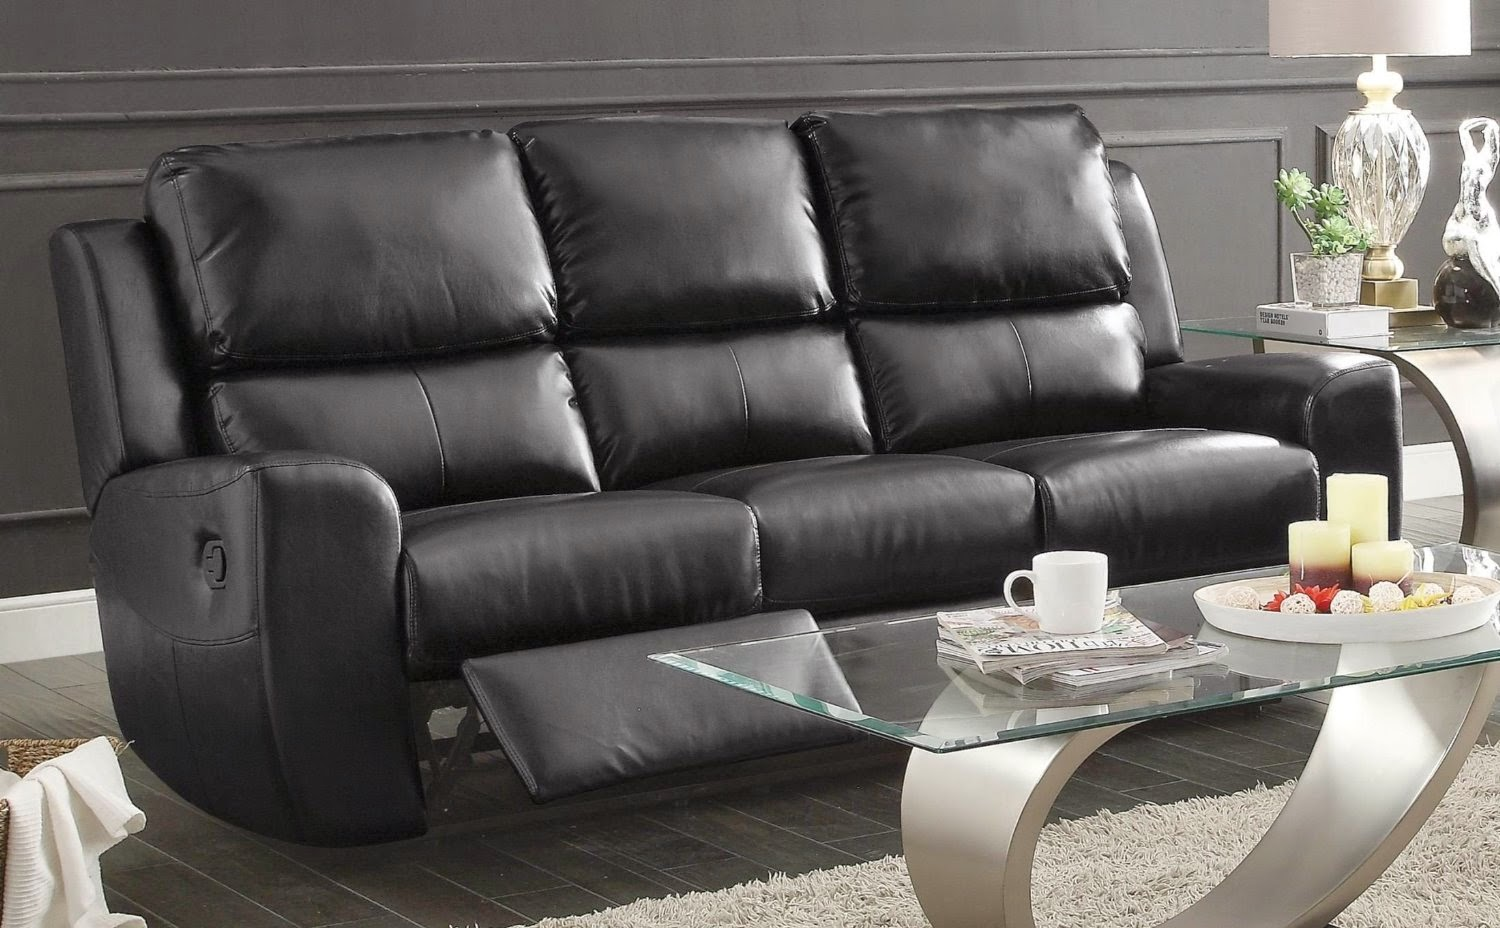 Reclining Sofa Sets Sale: Curved Leather Reclining Sofa